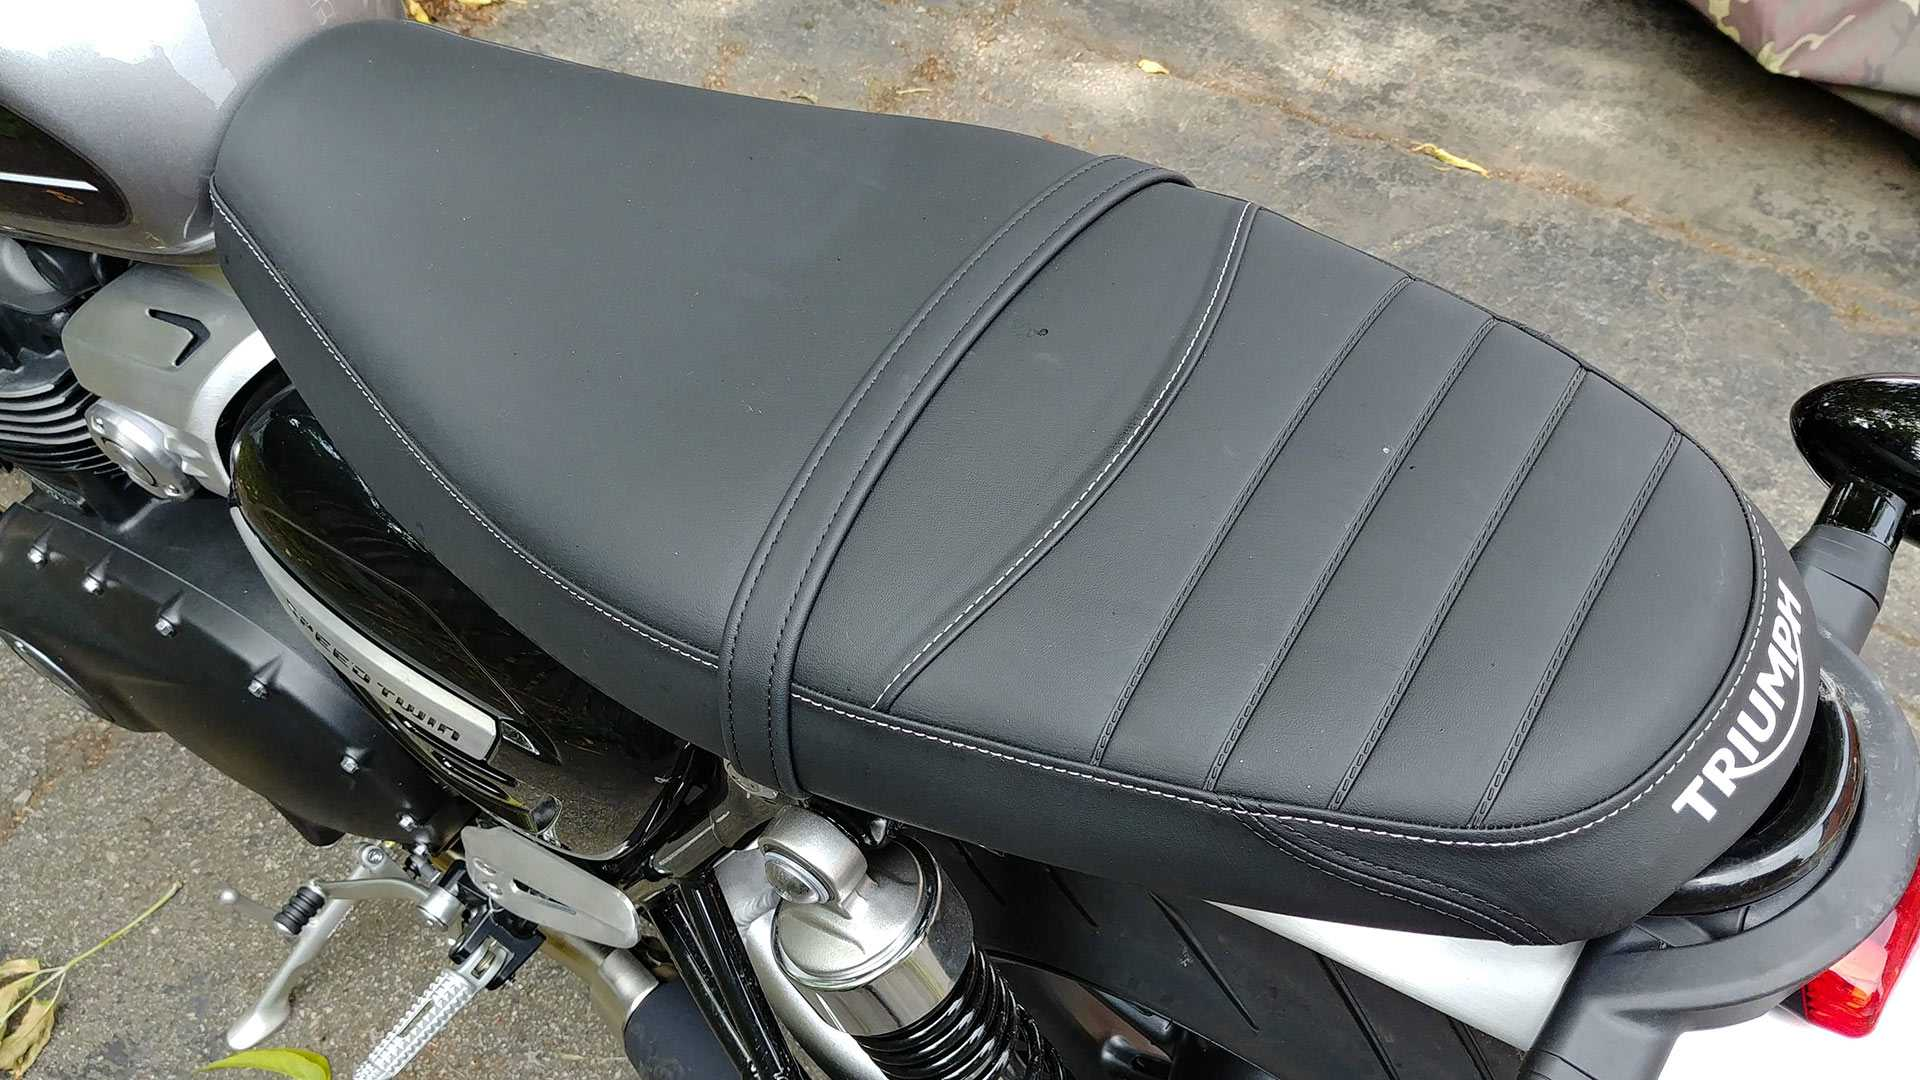 triumph-speed-twin-2020-hoai-co-velvet-not-far-with-the-present-trends